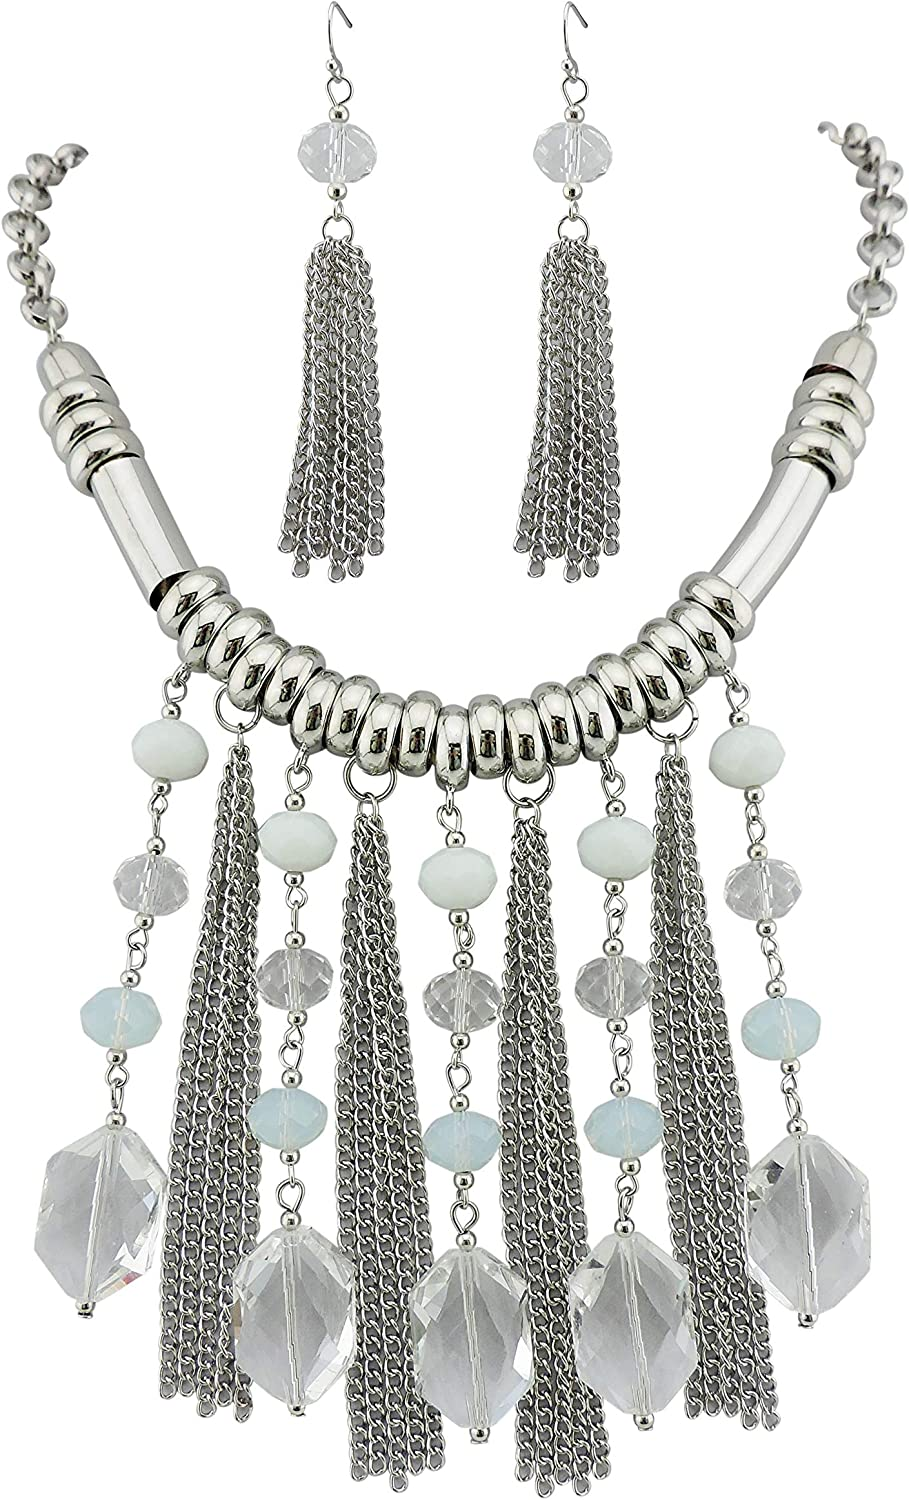 Bocar Collar Chain Statement Bib Chunky Necklace with Cluster Pendant Tassel 20